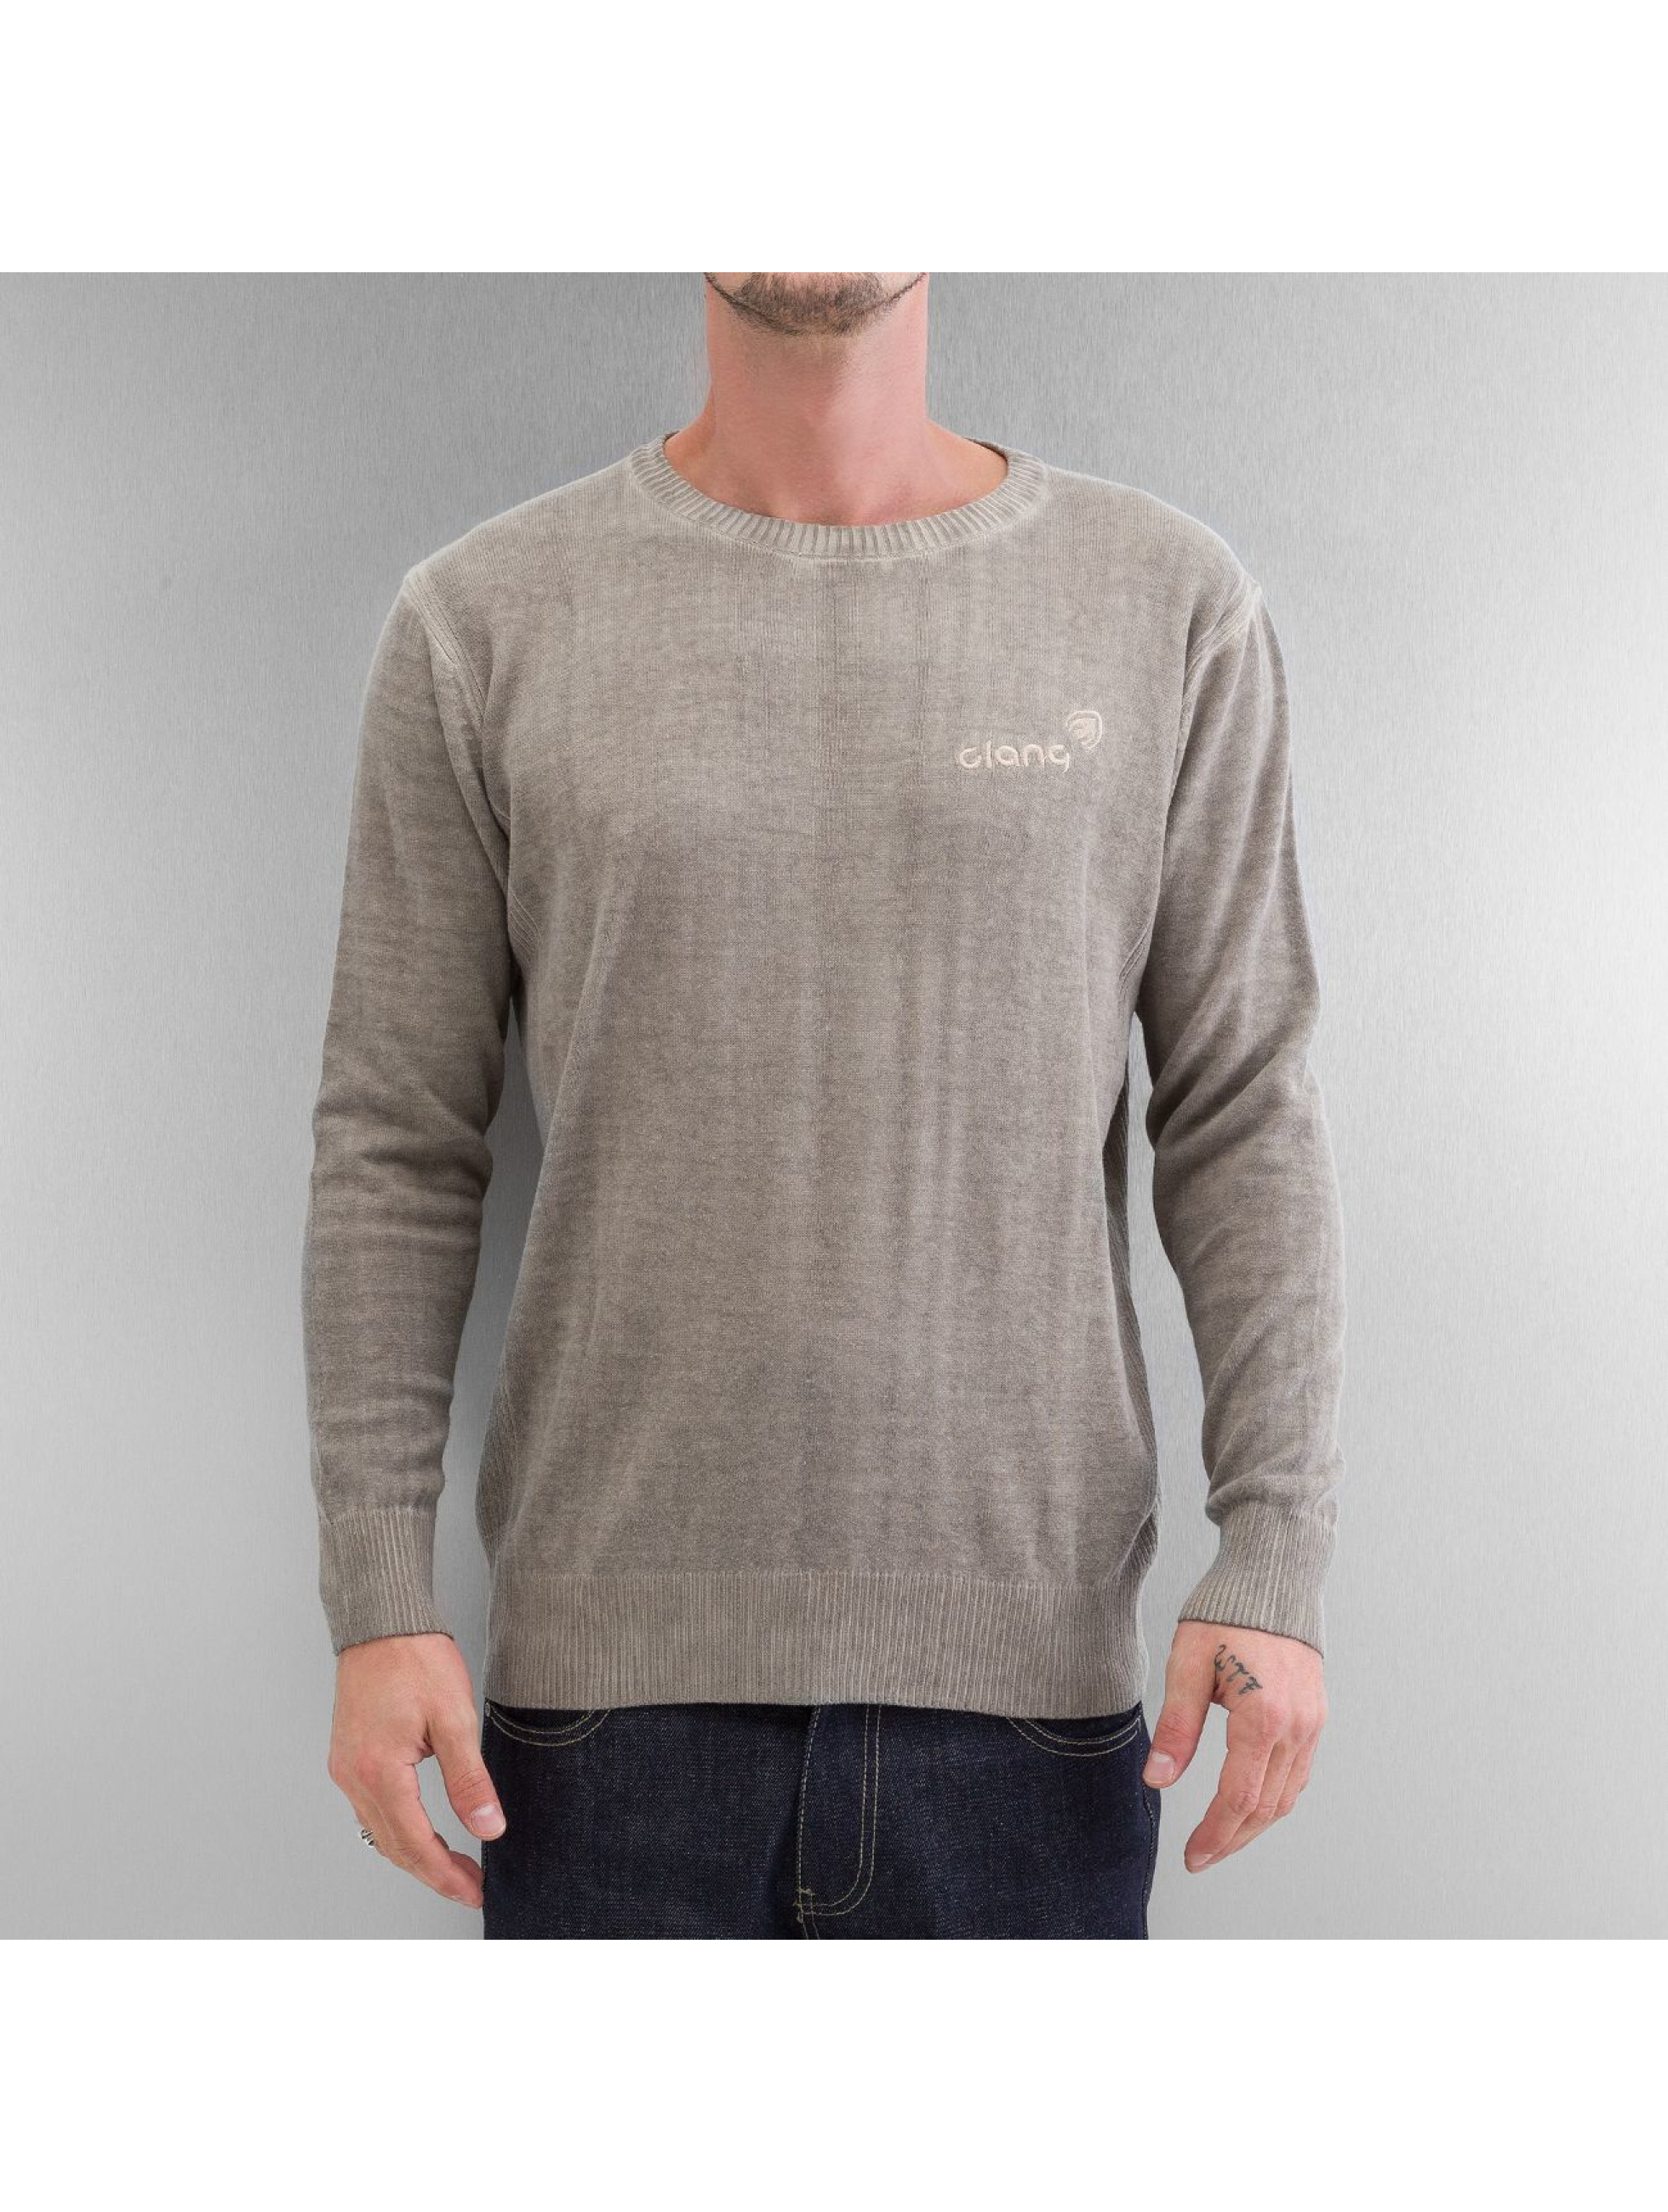 Clang Männer Pullover Oilwashed Knitted in khaki